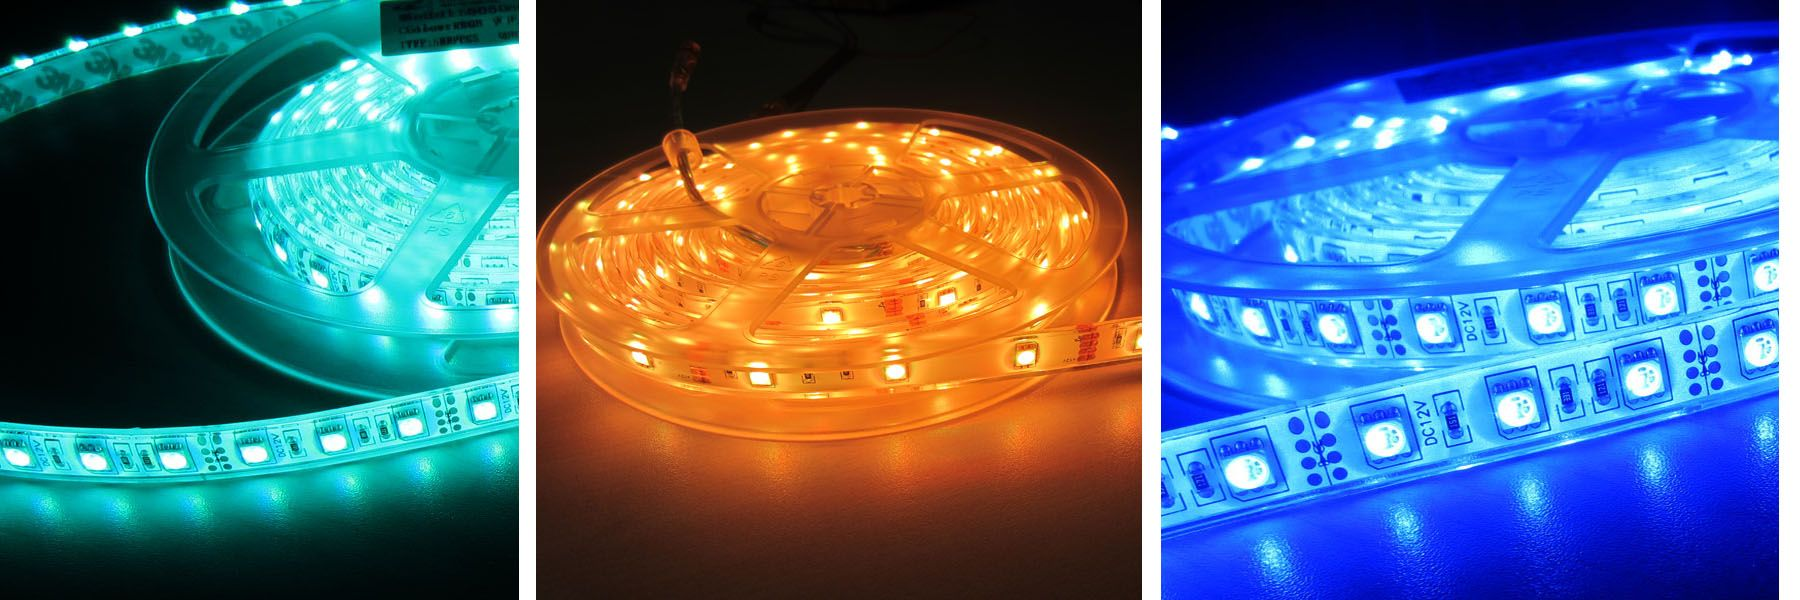 dmx 2 wires small led thin rope light led flexible neon lamp manufacturer from shenzhen china aa1b2f01 5050 led strip light oem product [ 1800 x 600 Pixel ]